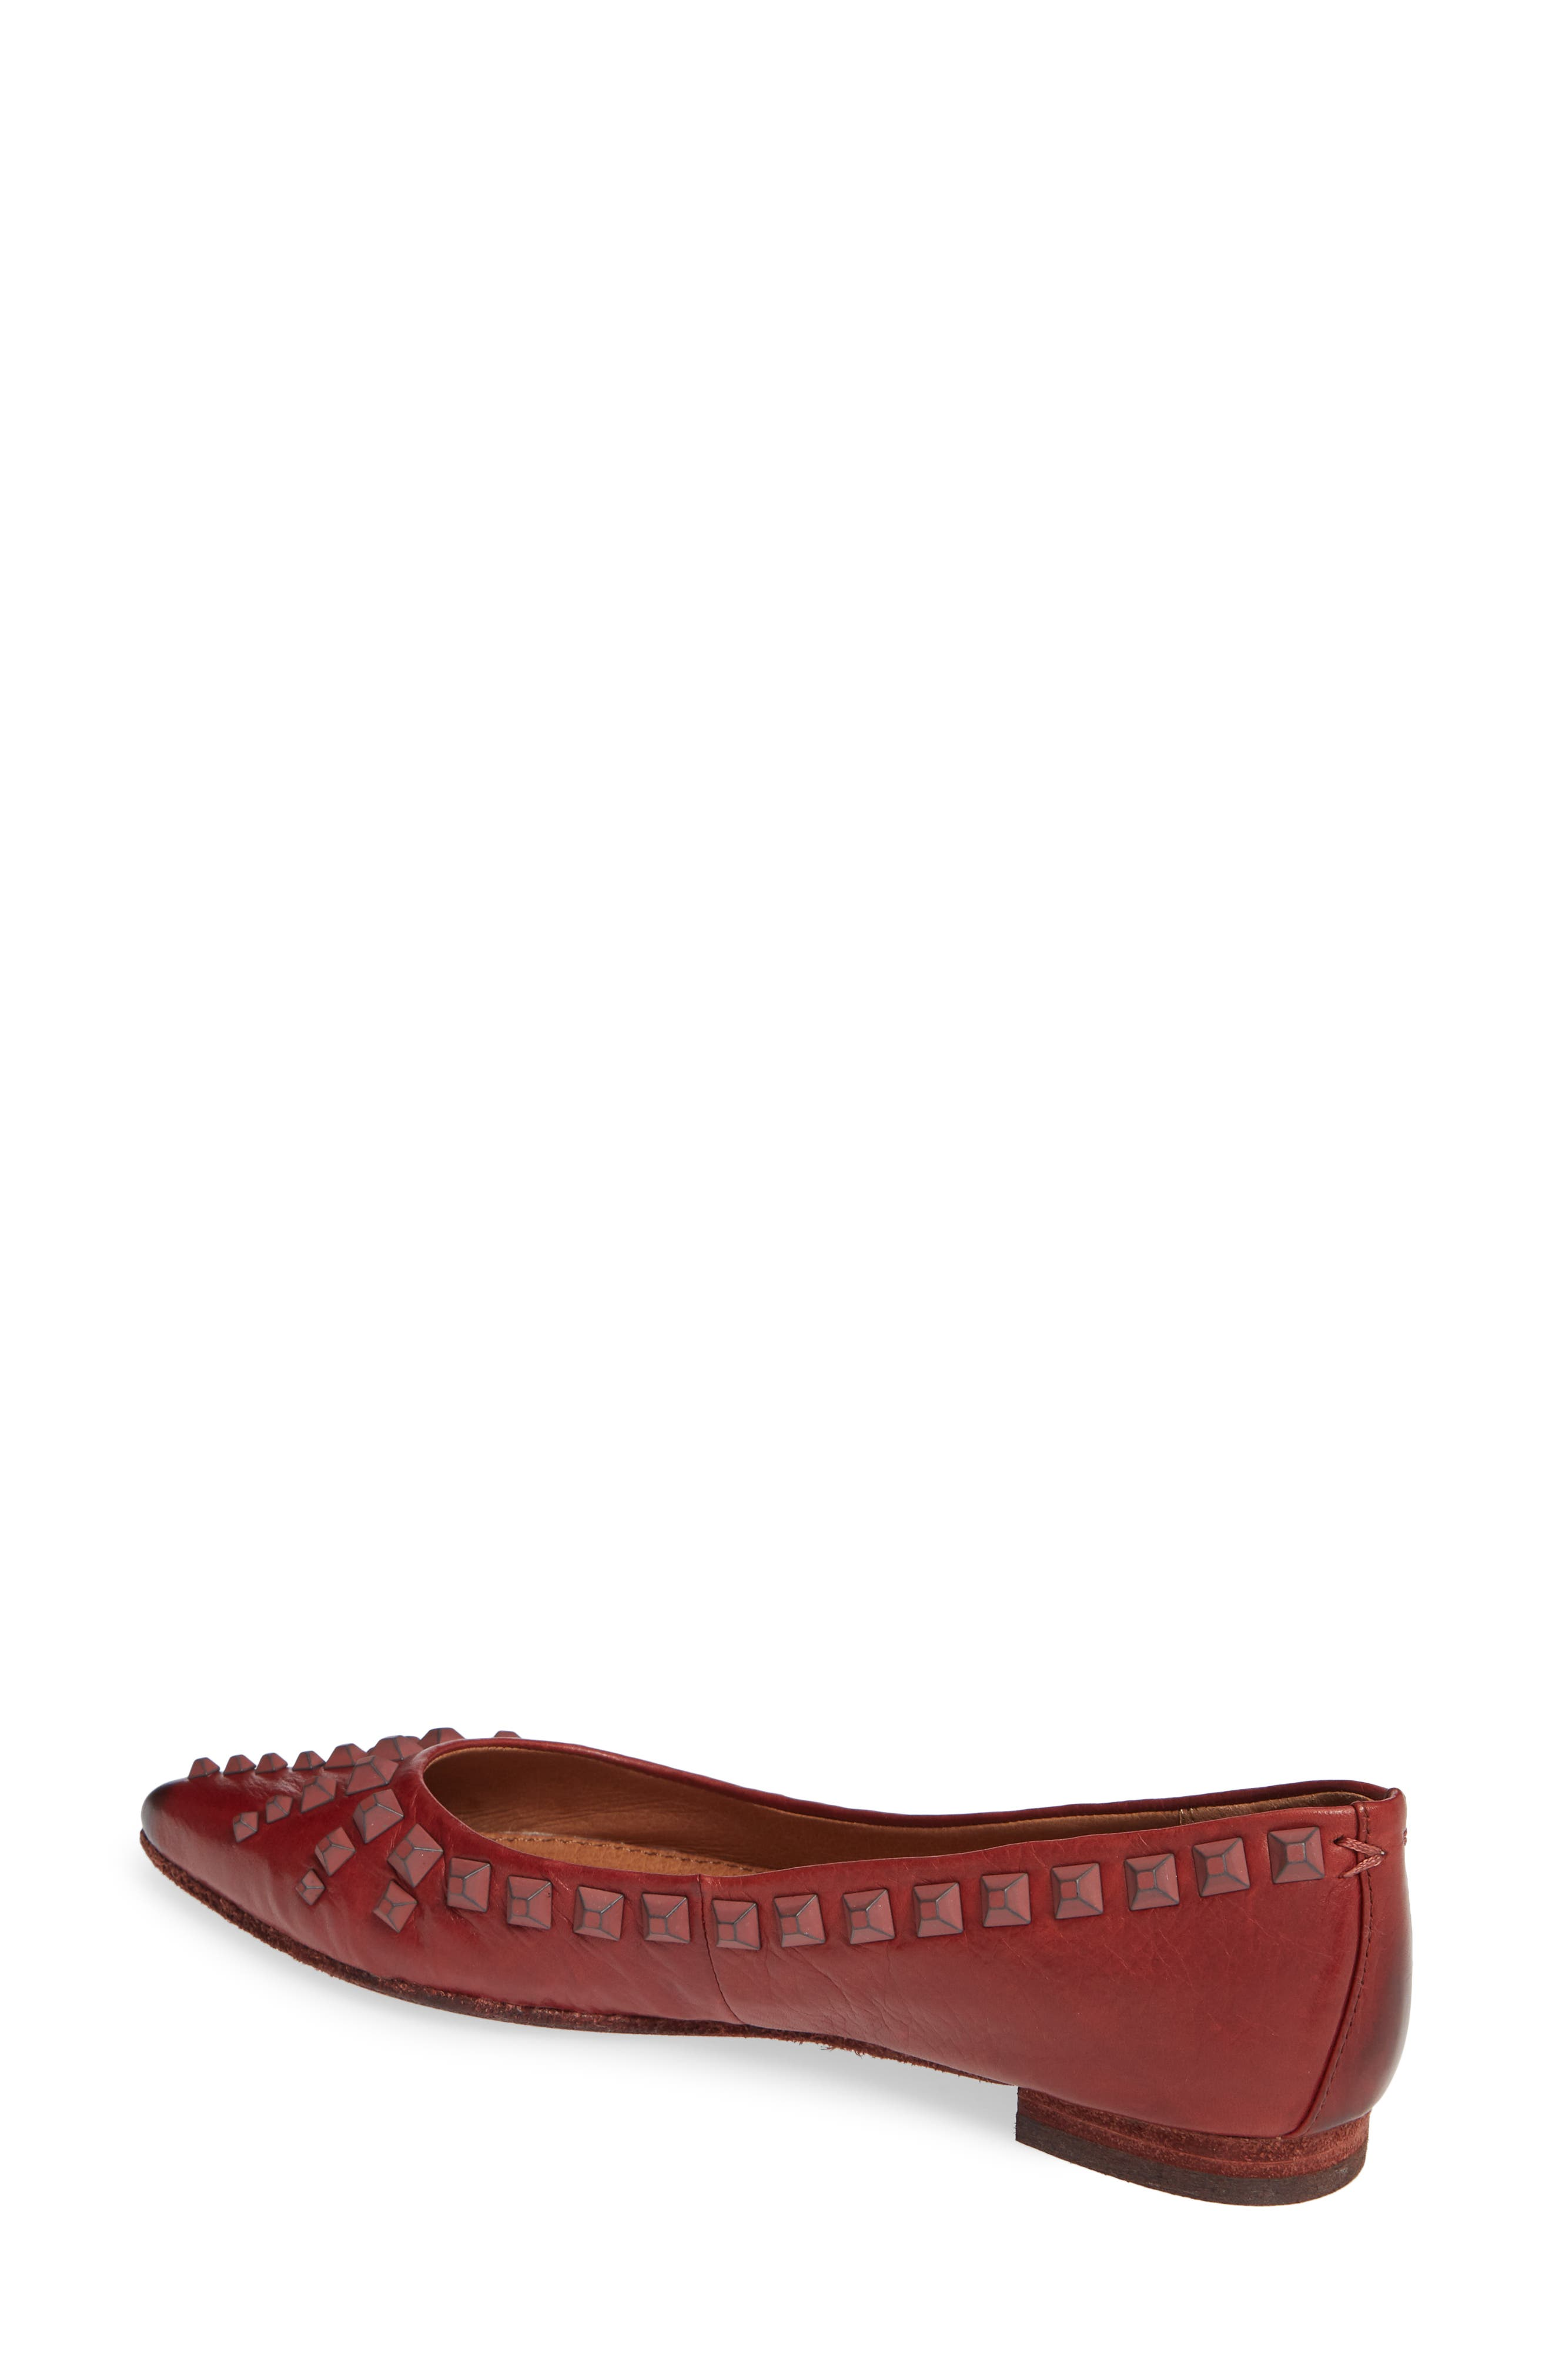 Sienna Deco Stud Ballet Flat,                             Alternate thumbnail 2, color,                             RED CLAY LEATHER